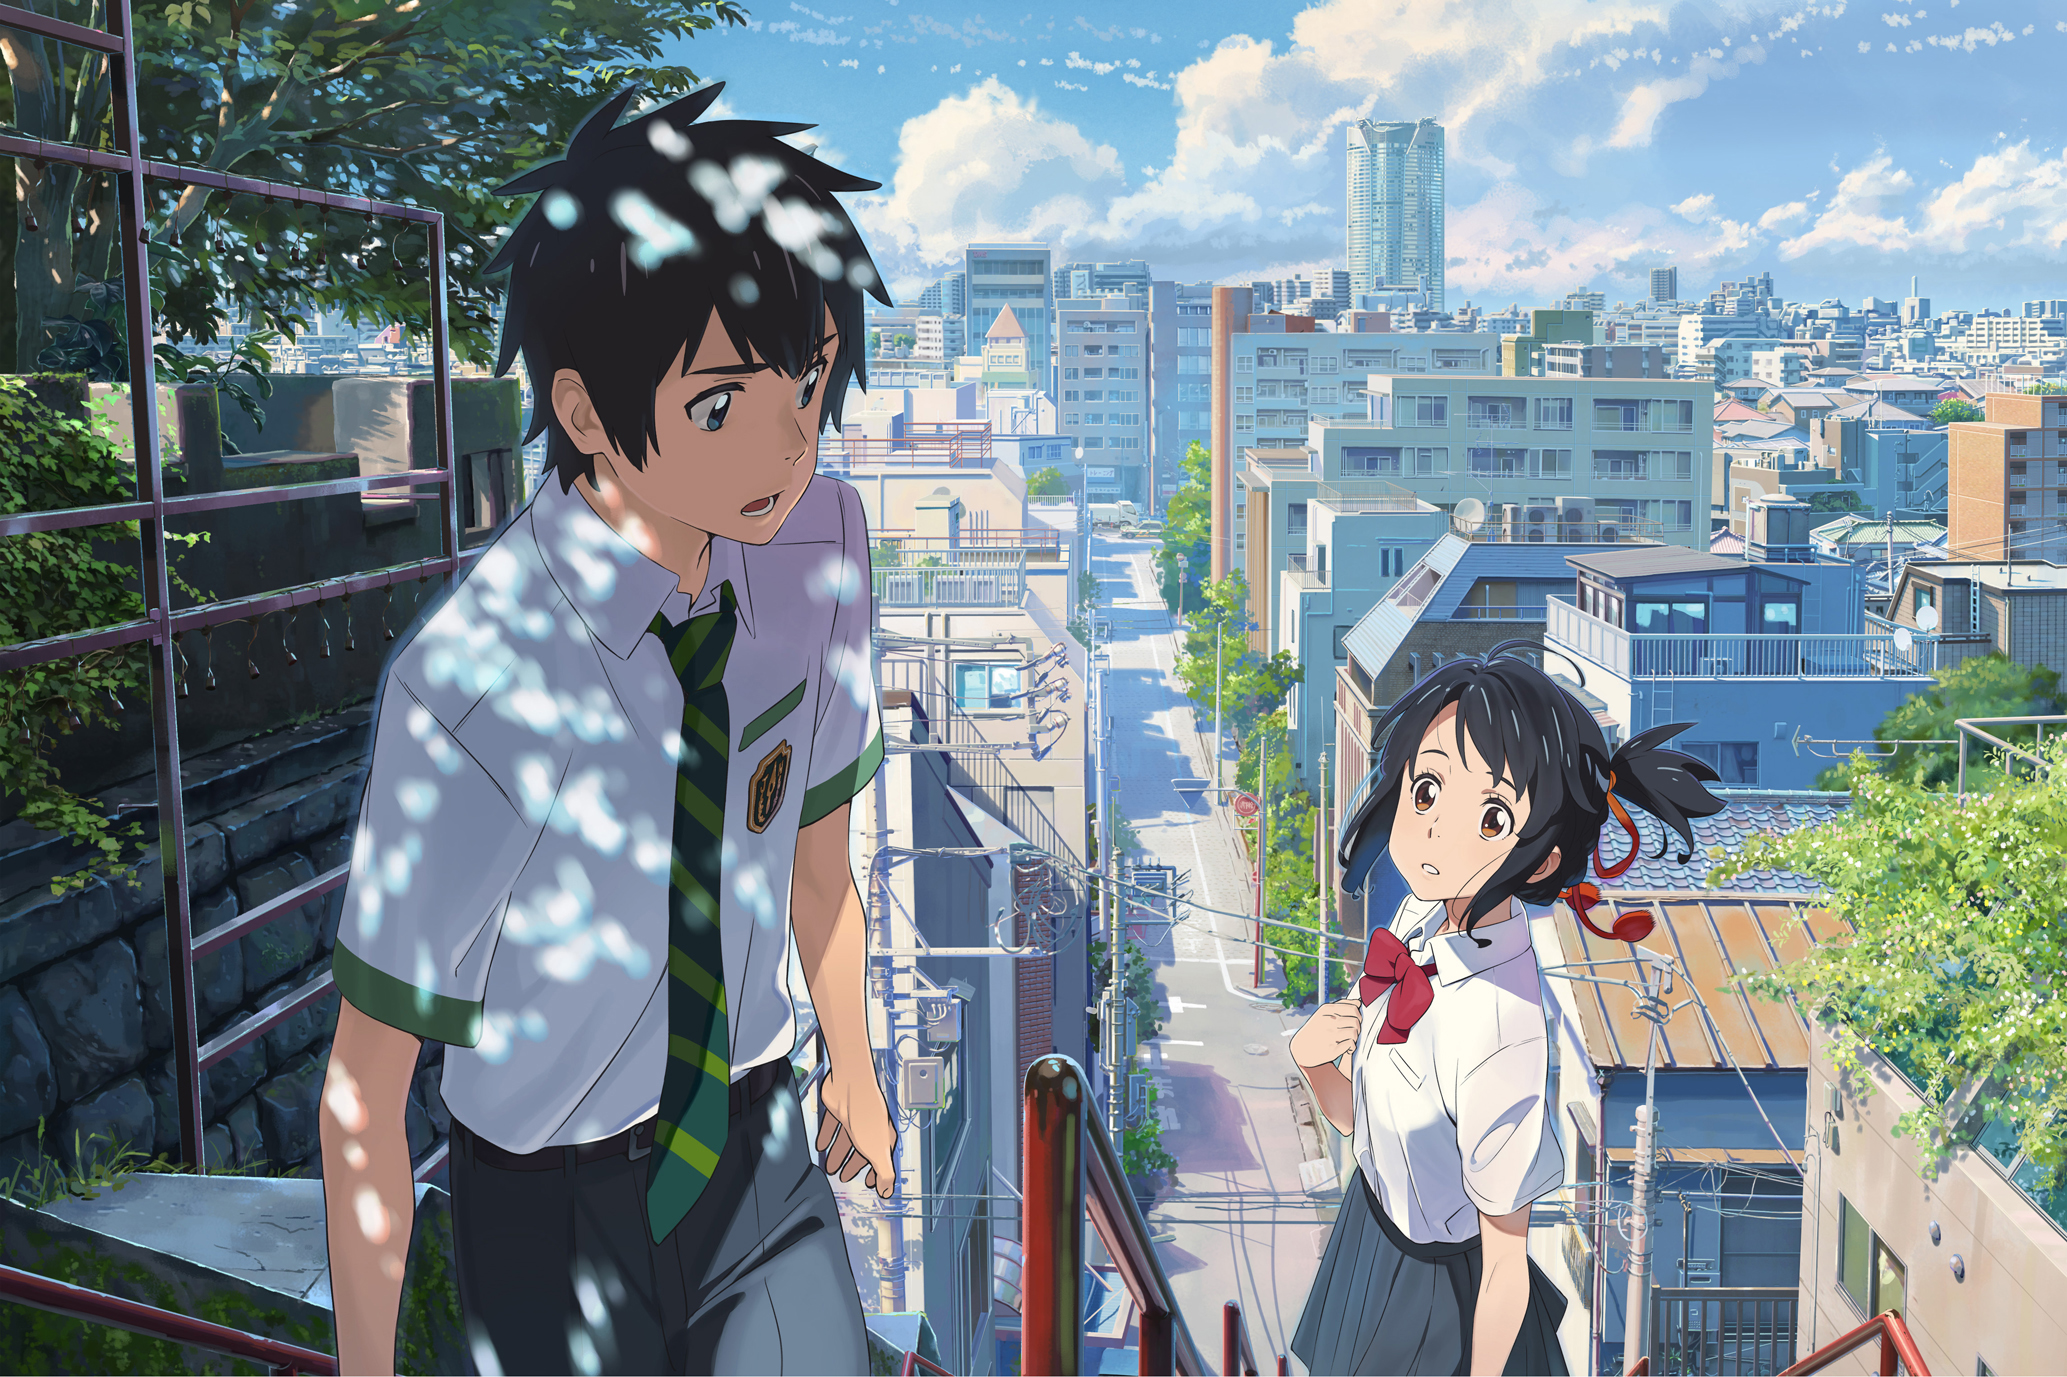 Rumor japanese anime hit kimi no na wa your name will be showing this philippine theaters in december